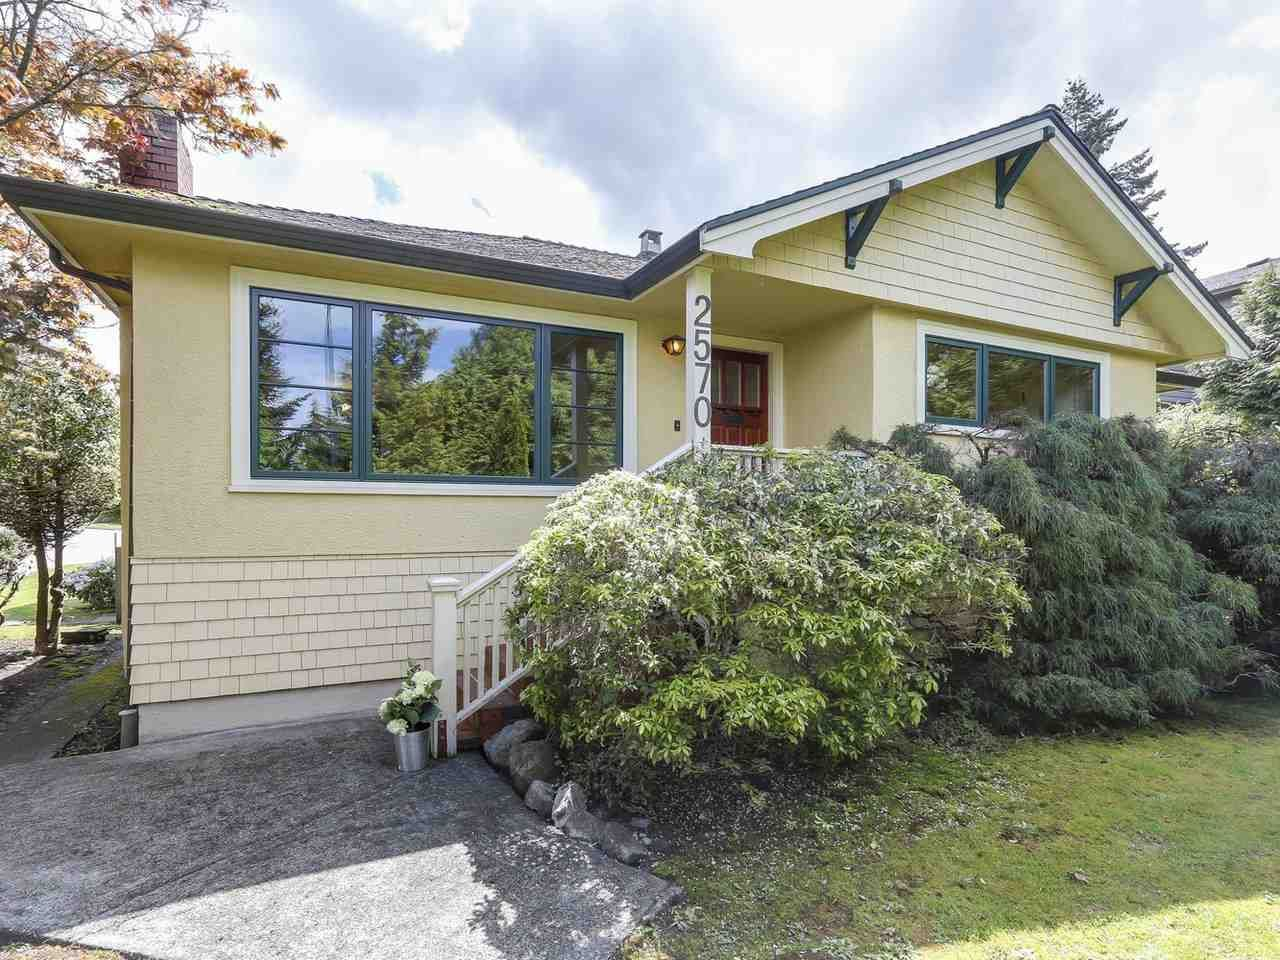 Main Photo: 2570 W KING EDWARD Avenue in Vancouver: Quilchena House for sale (Vancouver West)  : MLS®# R2169012